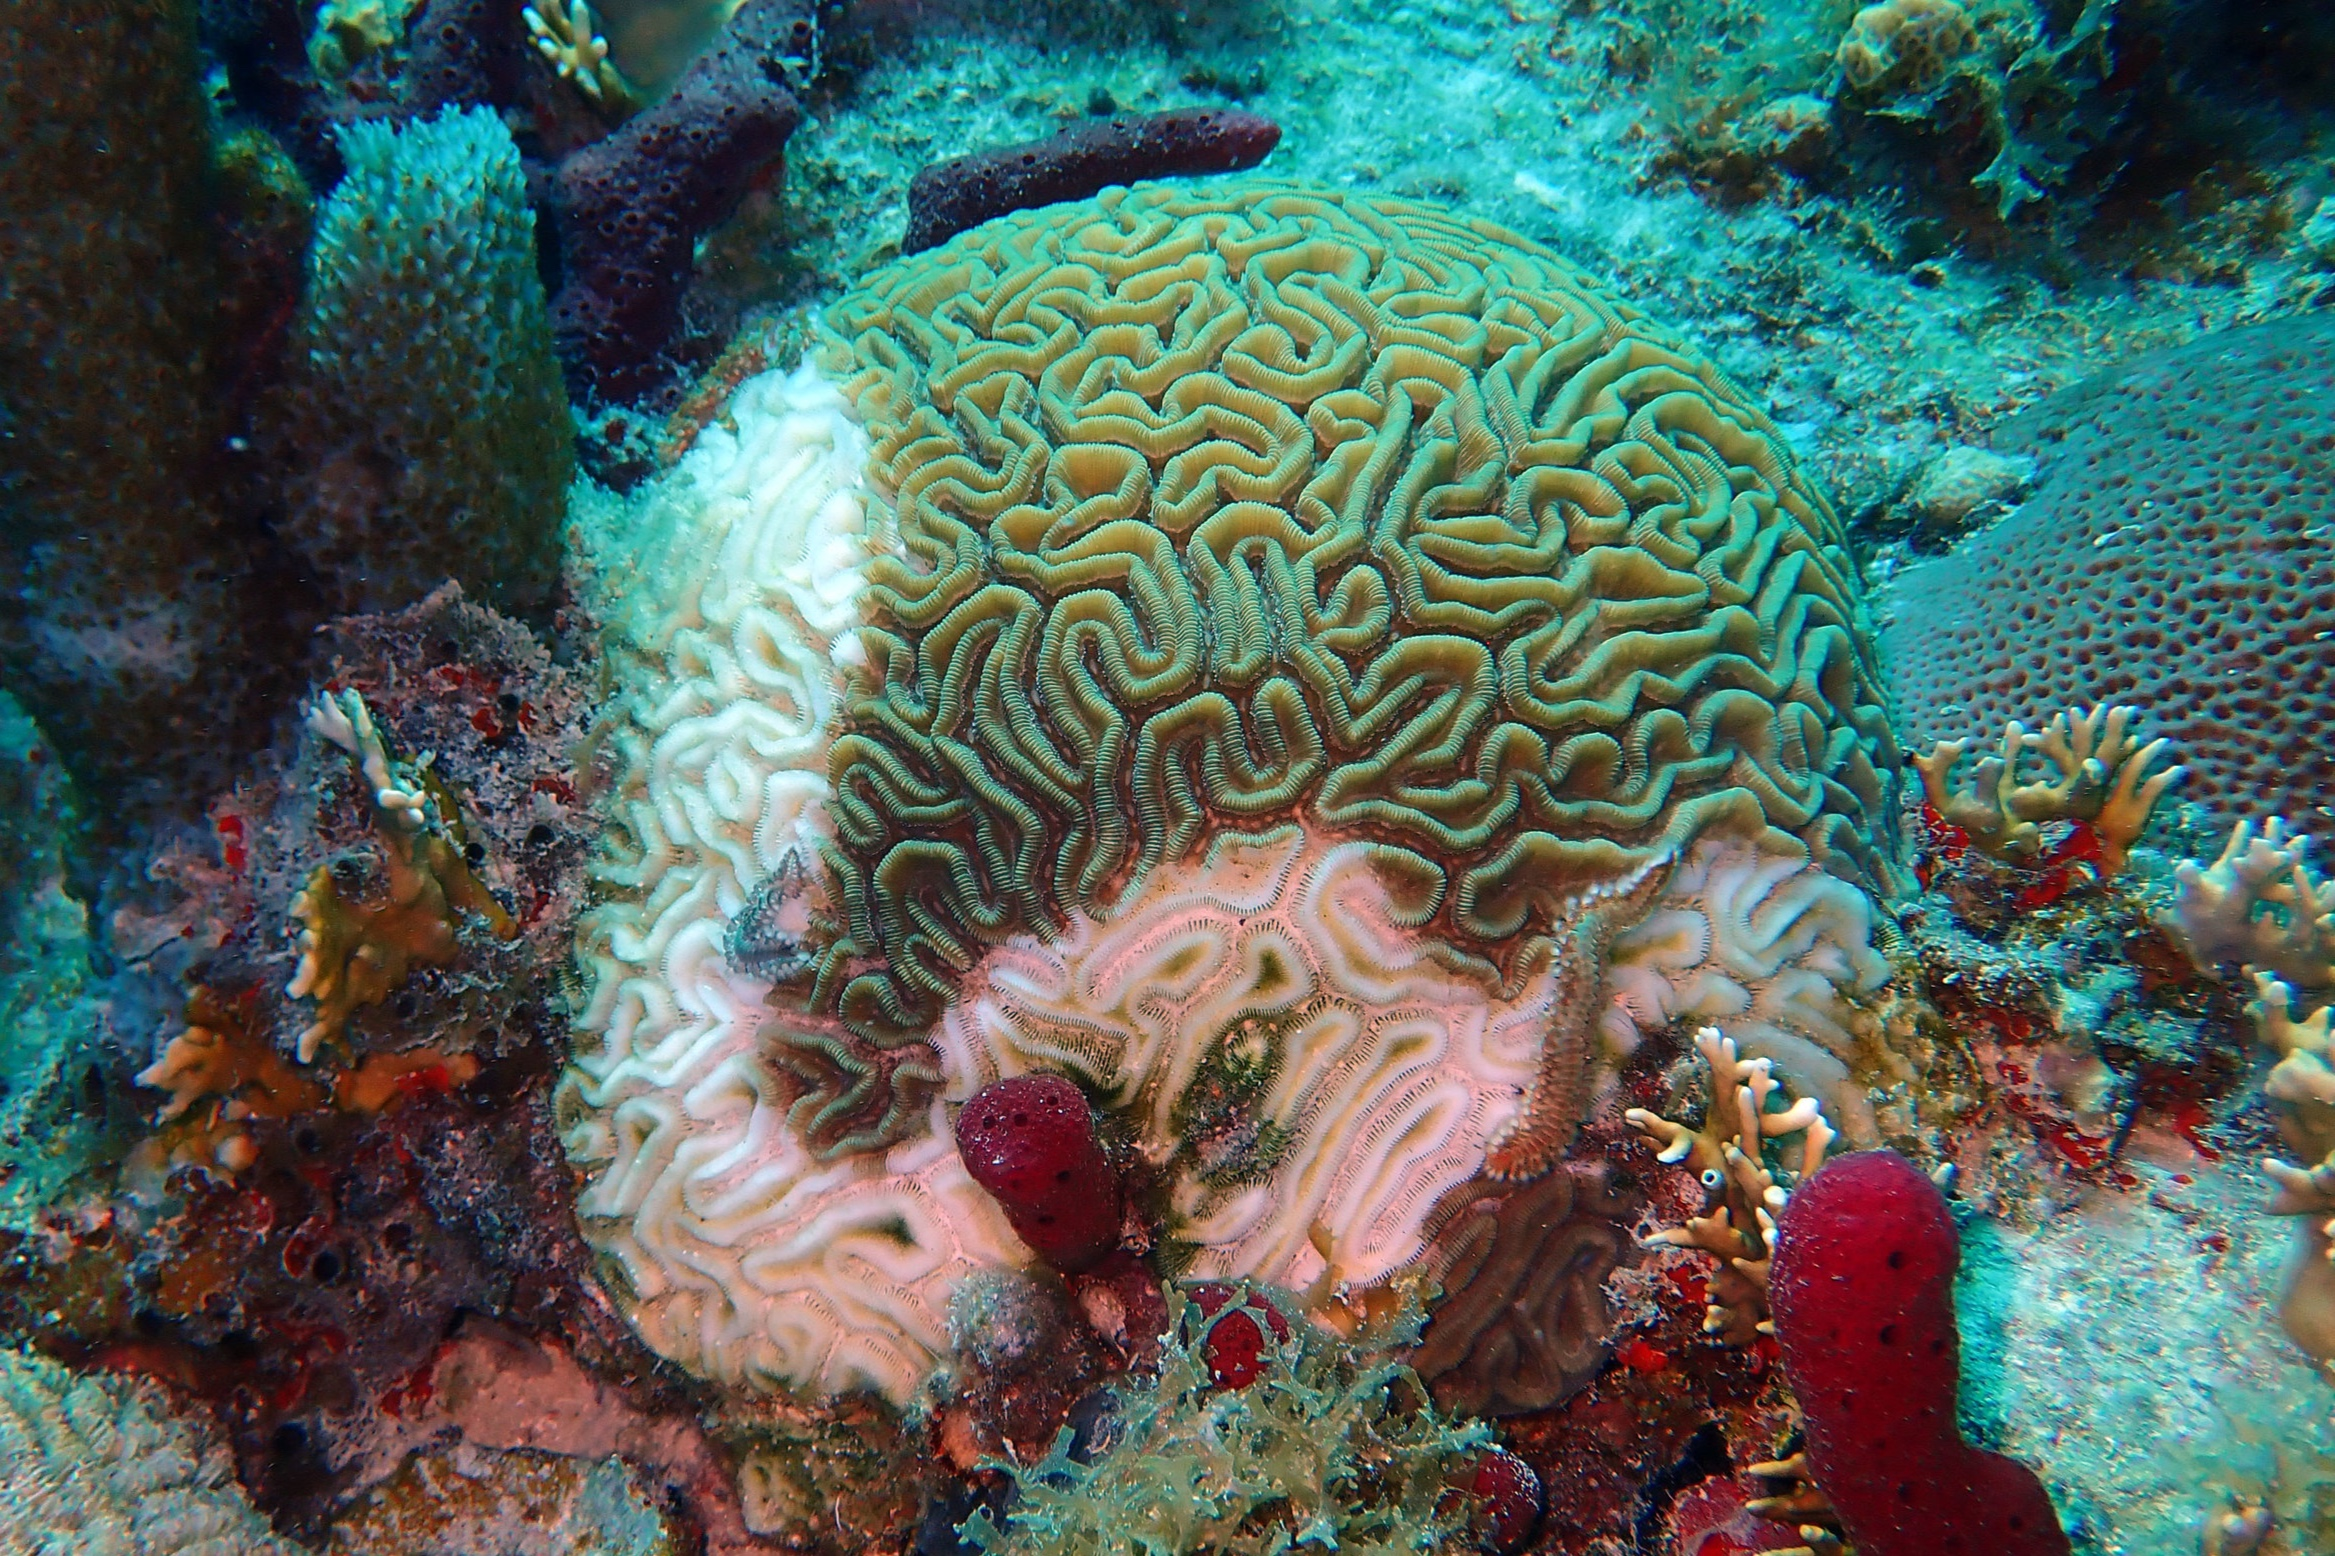 Diseased Grooved Brain Coral ( Diploria labyrinthiformis ) . This brain coral's stark white skeleton is exposed as it is ravaged by stony coral tissue loss disease.  Photo credit: Howard Forbes, Jr.